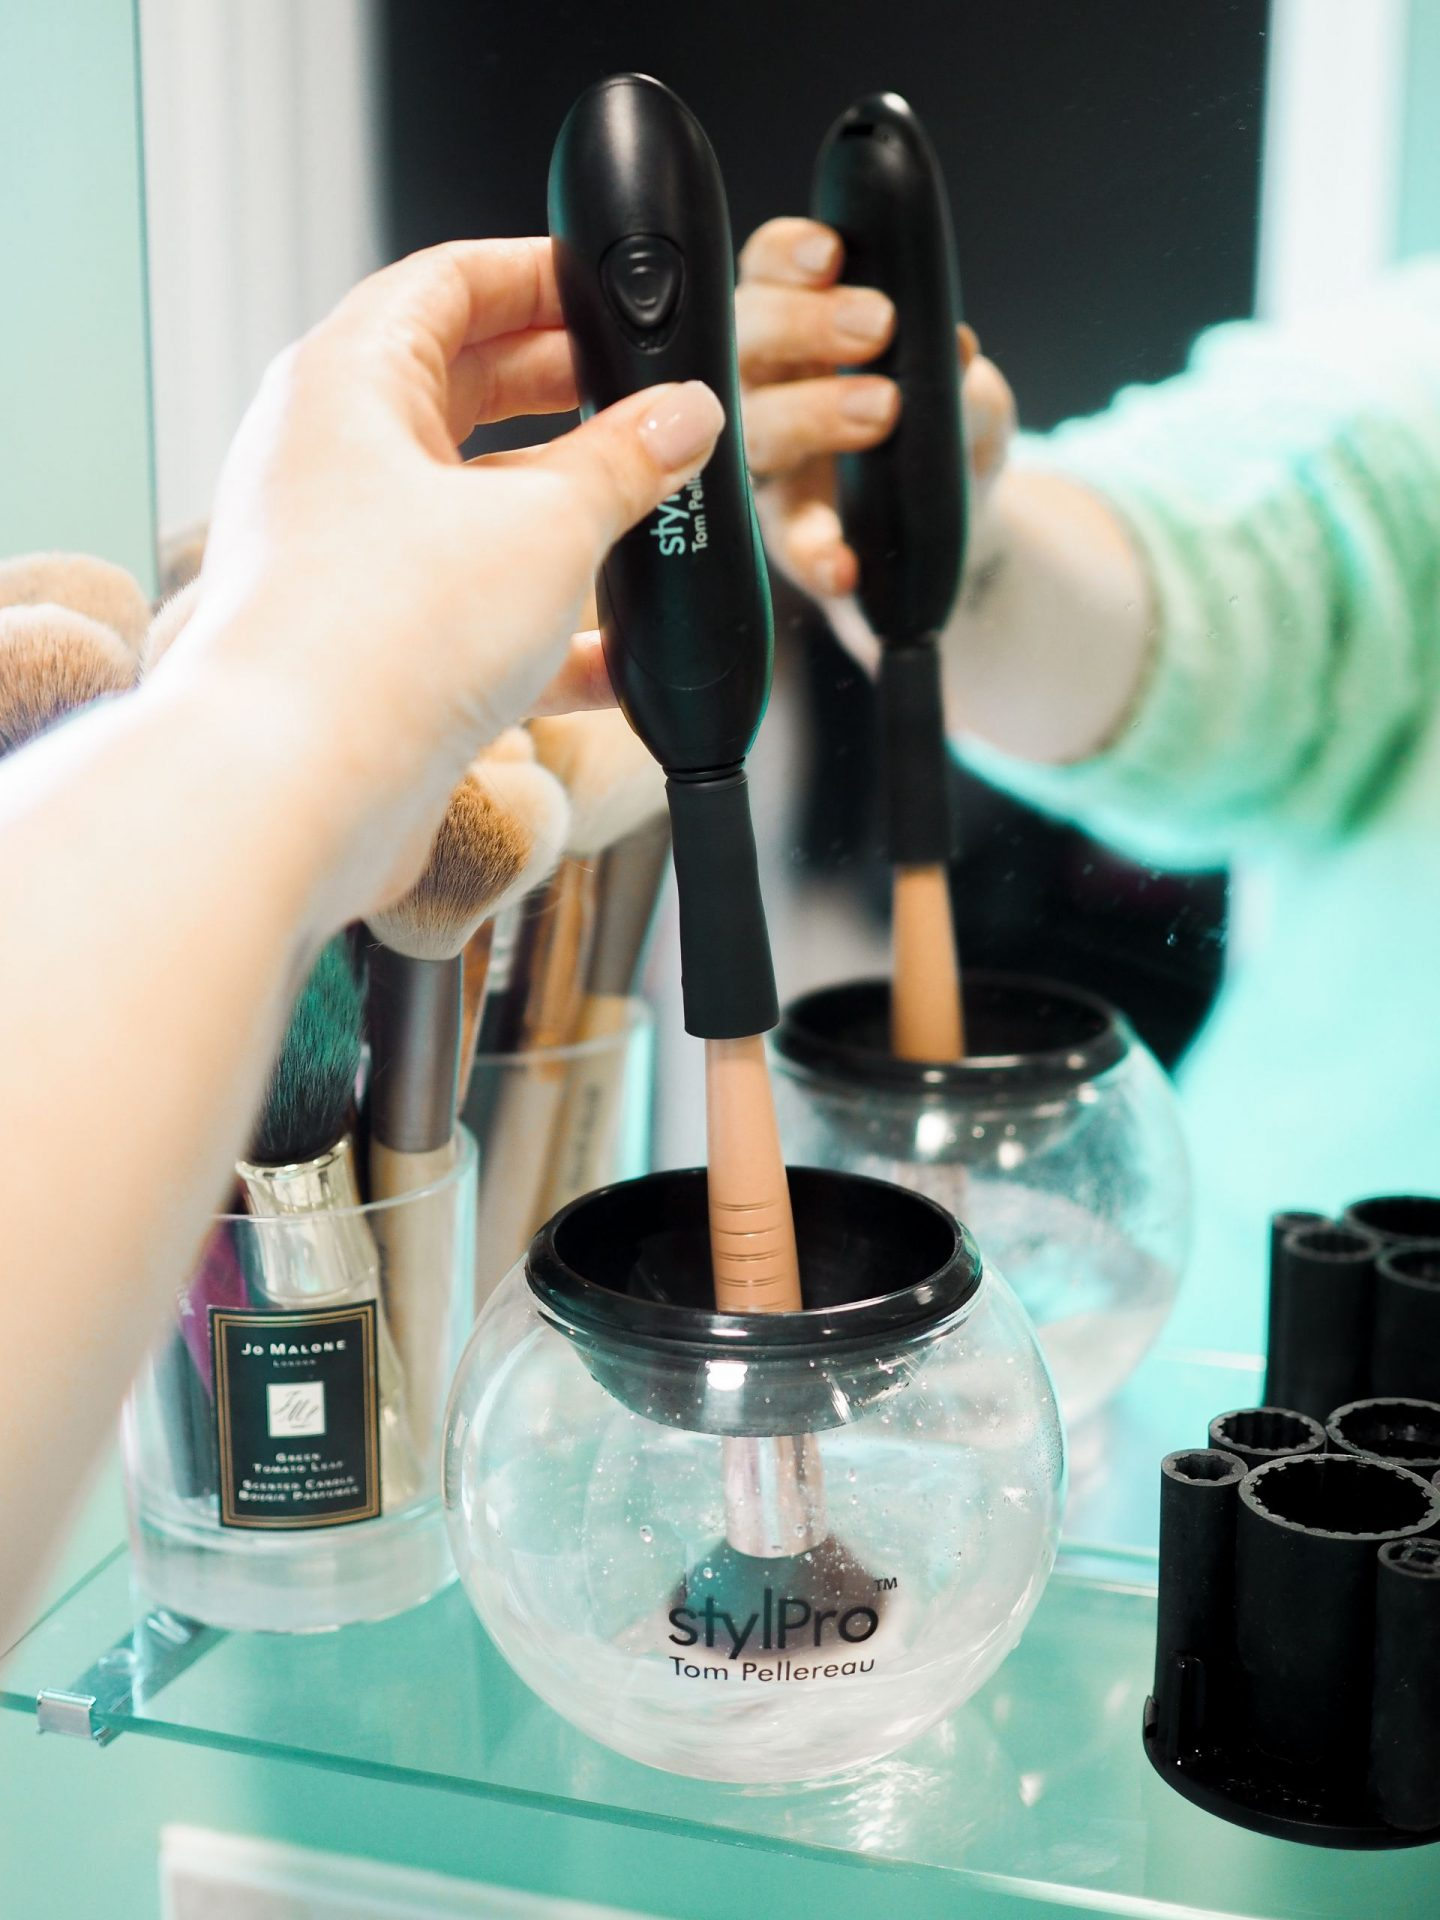 I Found The Easiest, Quickest & Most Hygienic Way To Clean Your Makeup Brushes